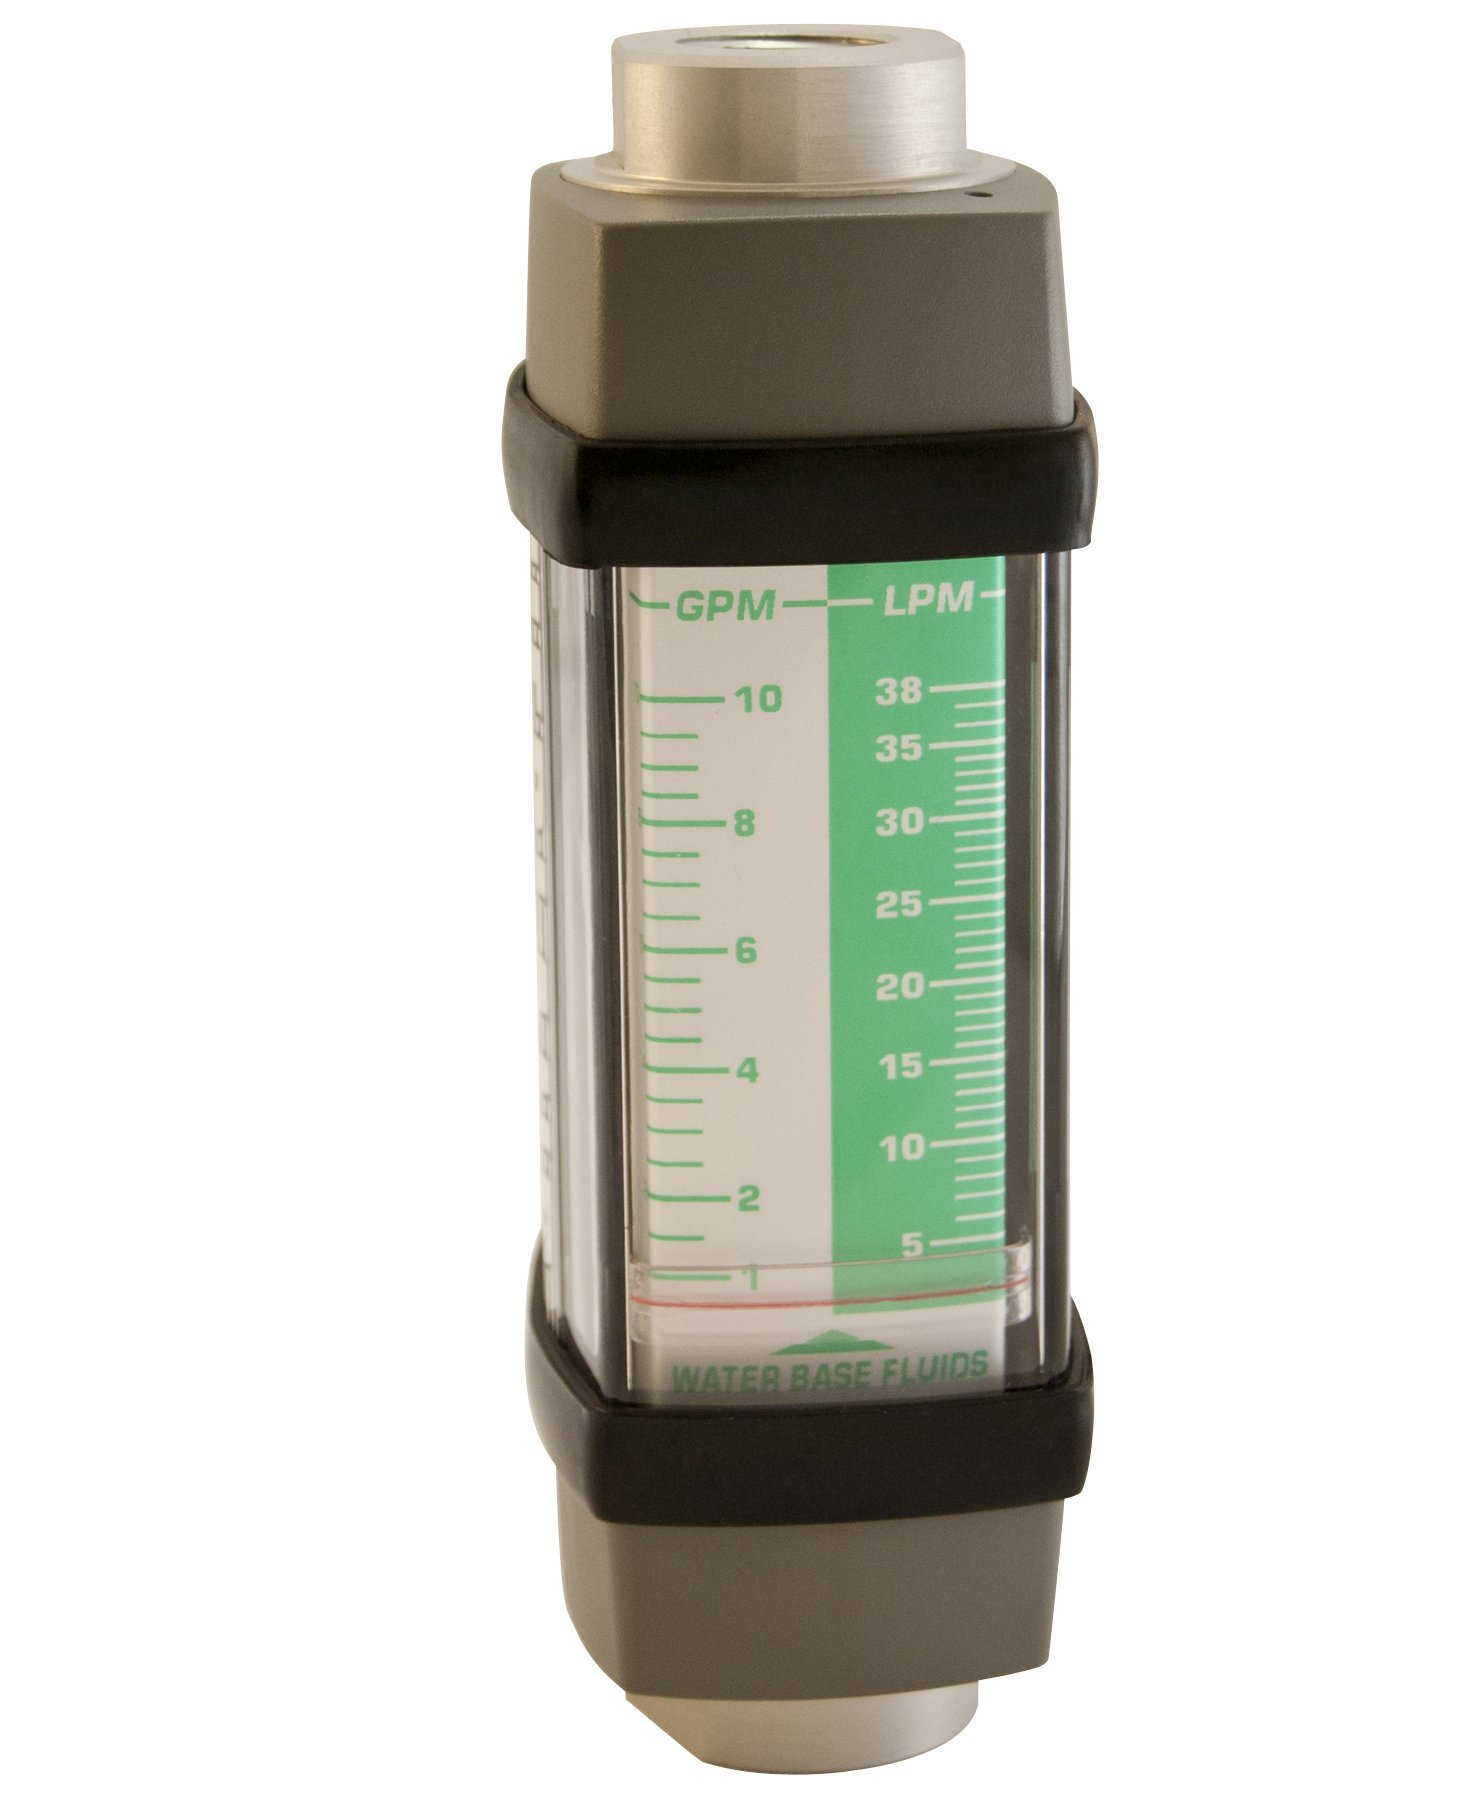 Hedland H613A-010 Flowmeter, Aluminum, For Use With Water-Based Fluids, 1 - 10 gpm Flow Range, 1/2'' NPT Female